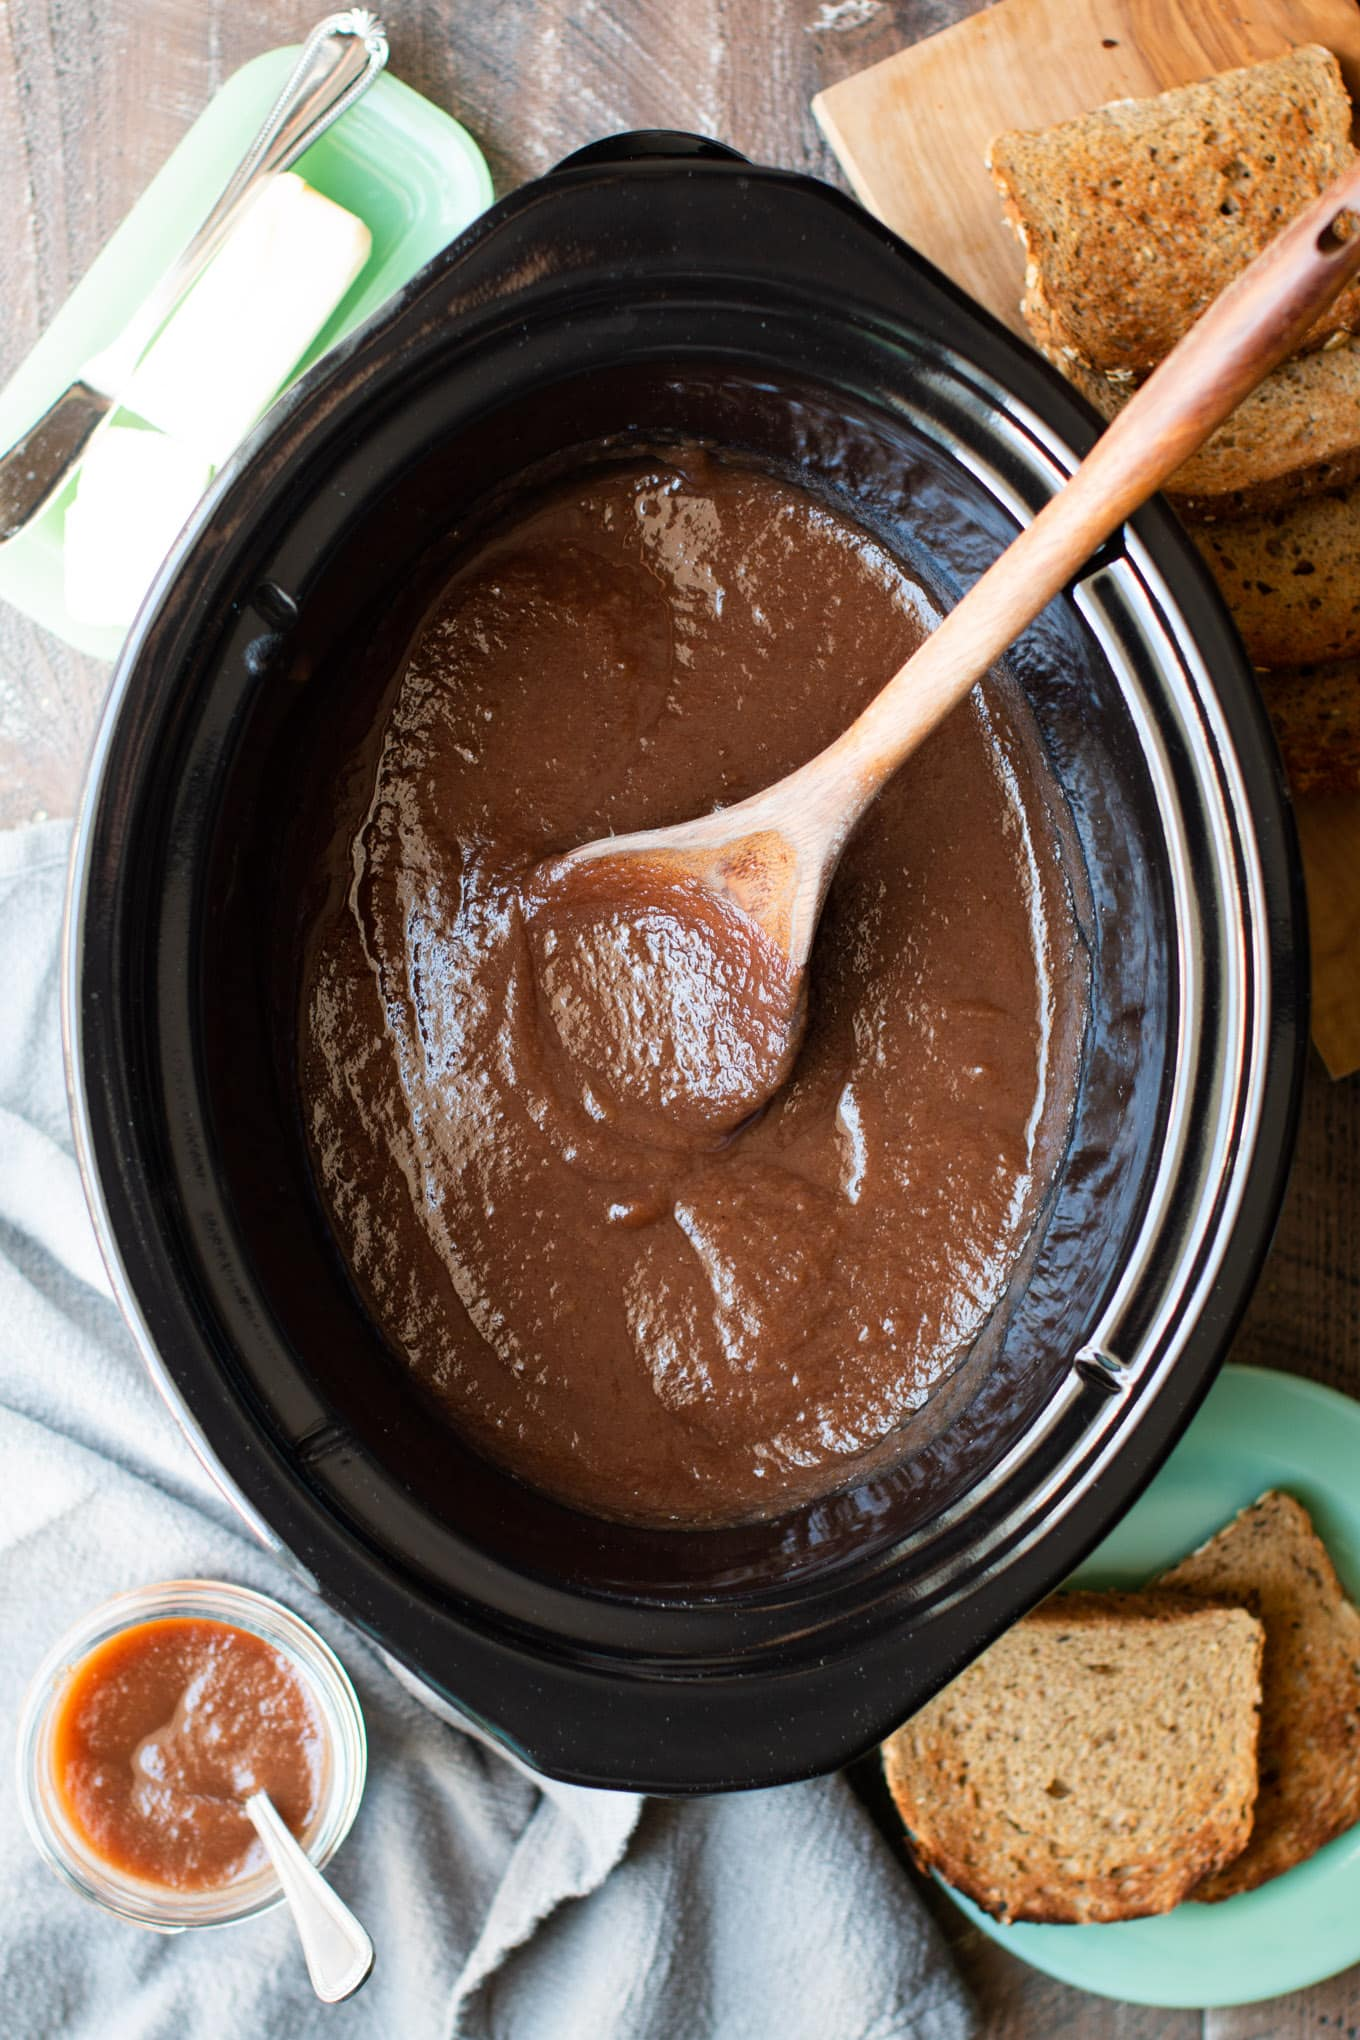 slow cooker half full of cooked apple butter